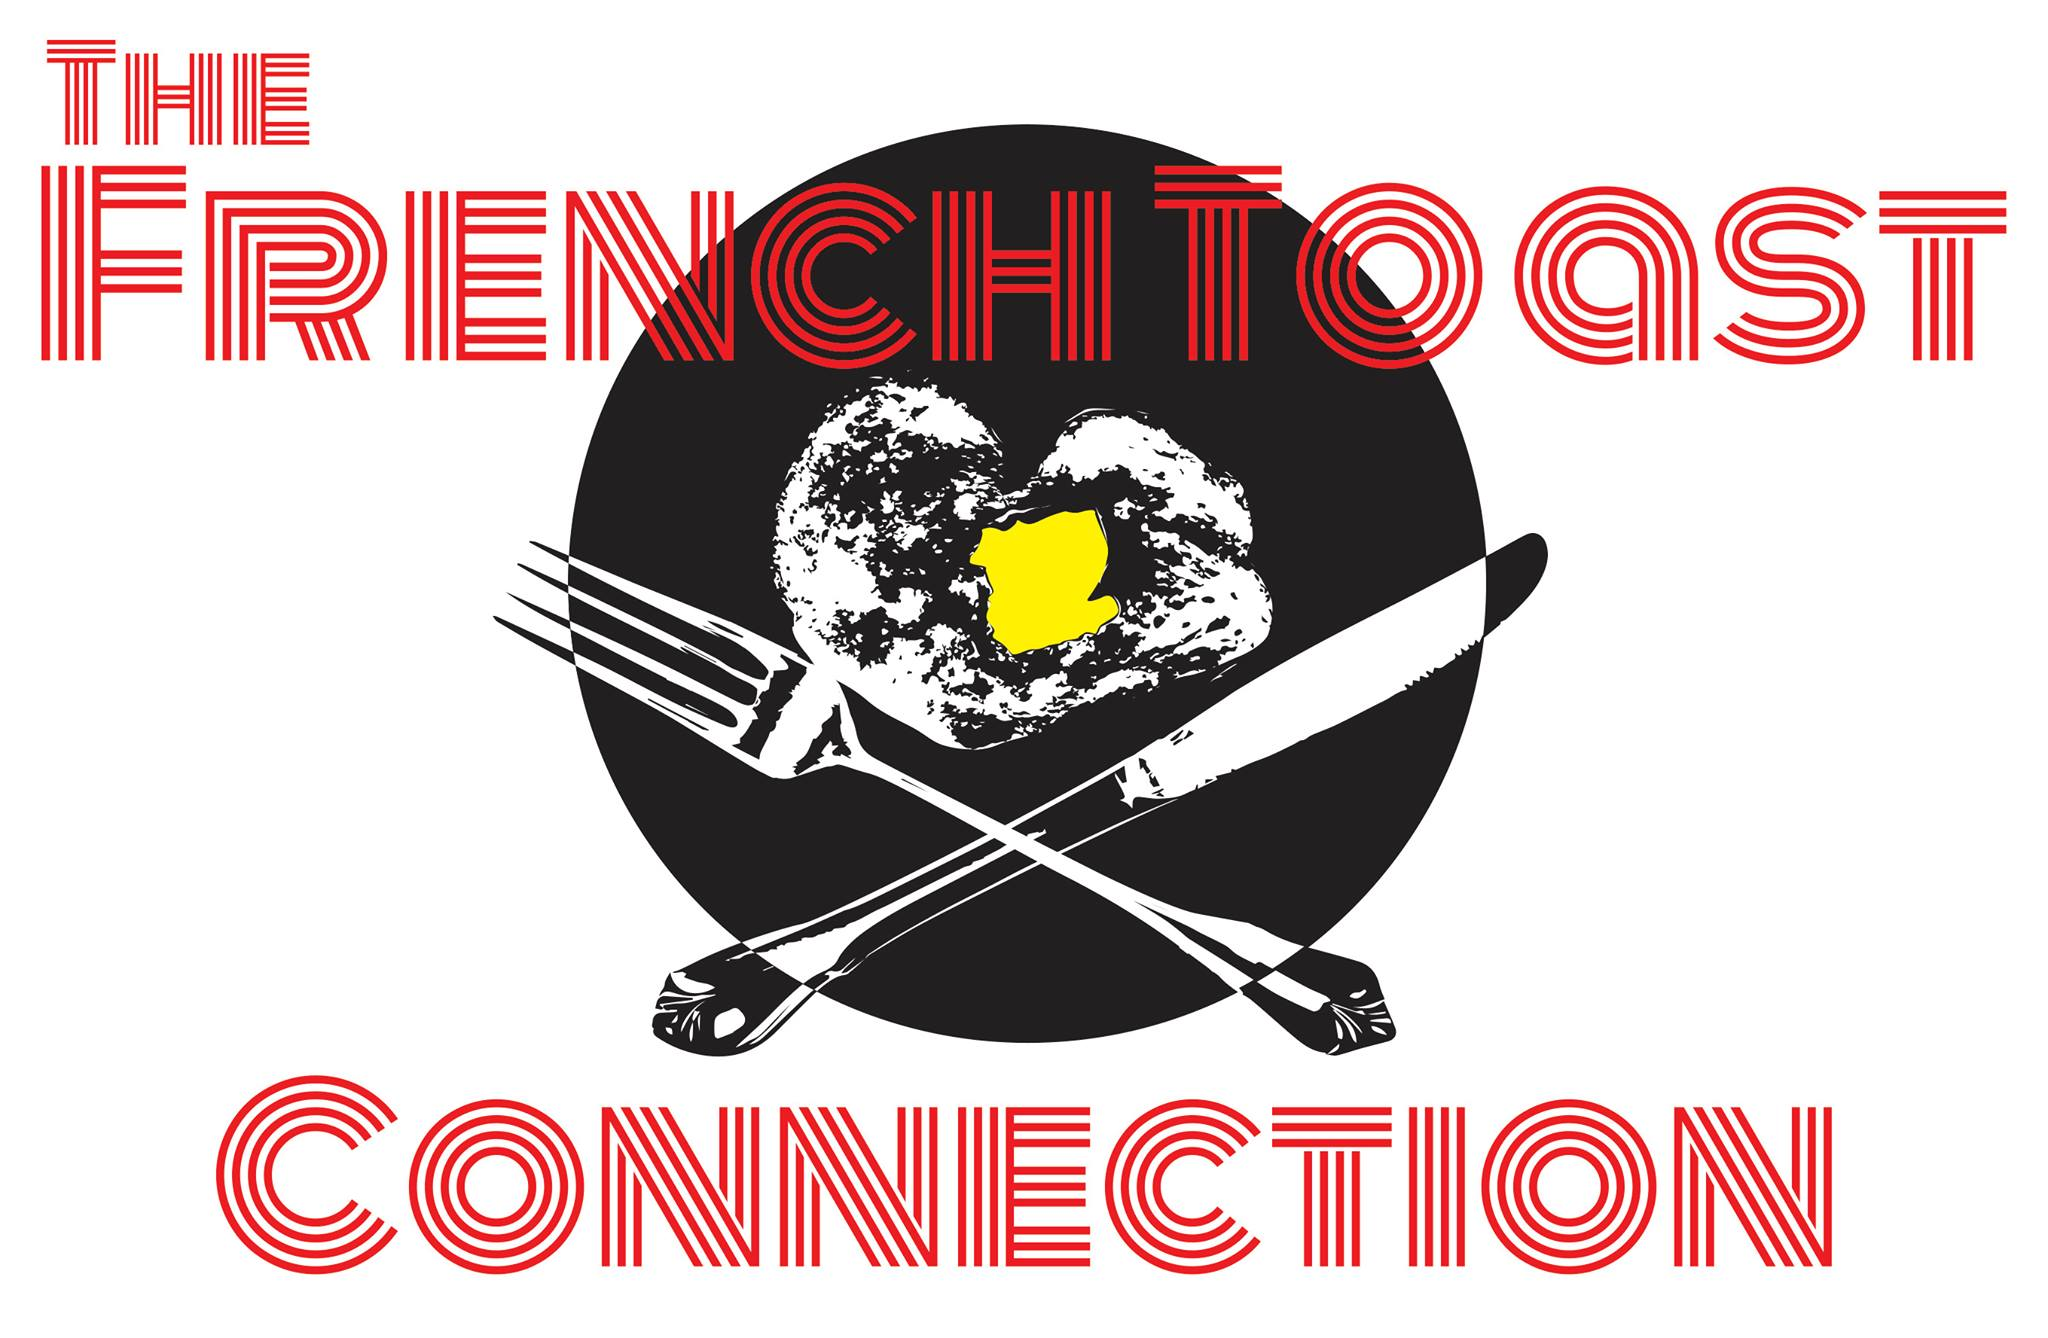 The French Toast Connection logo